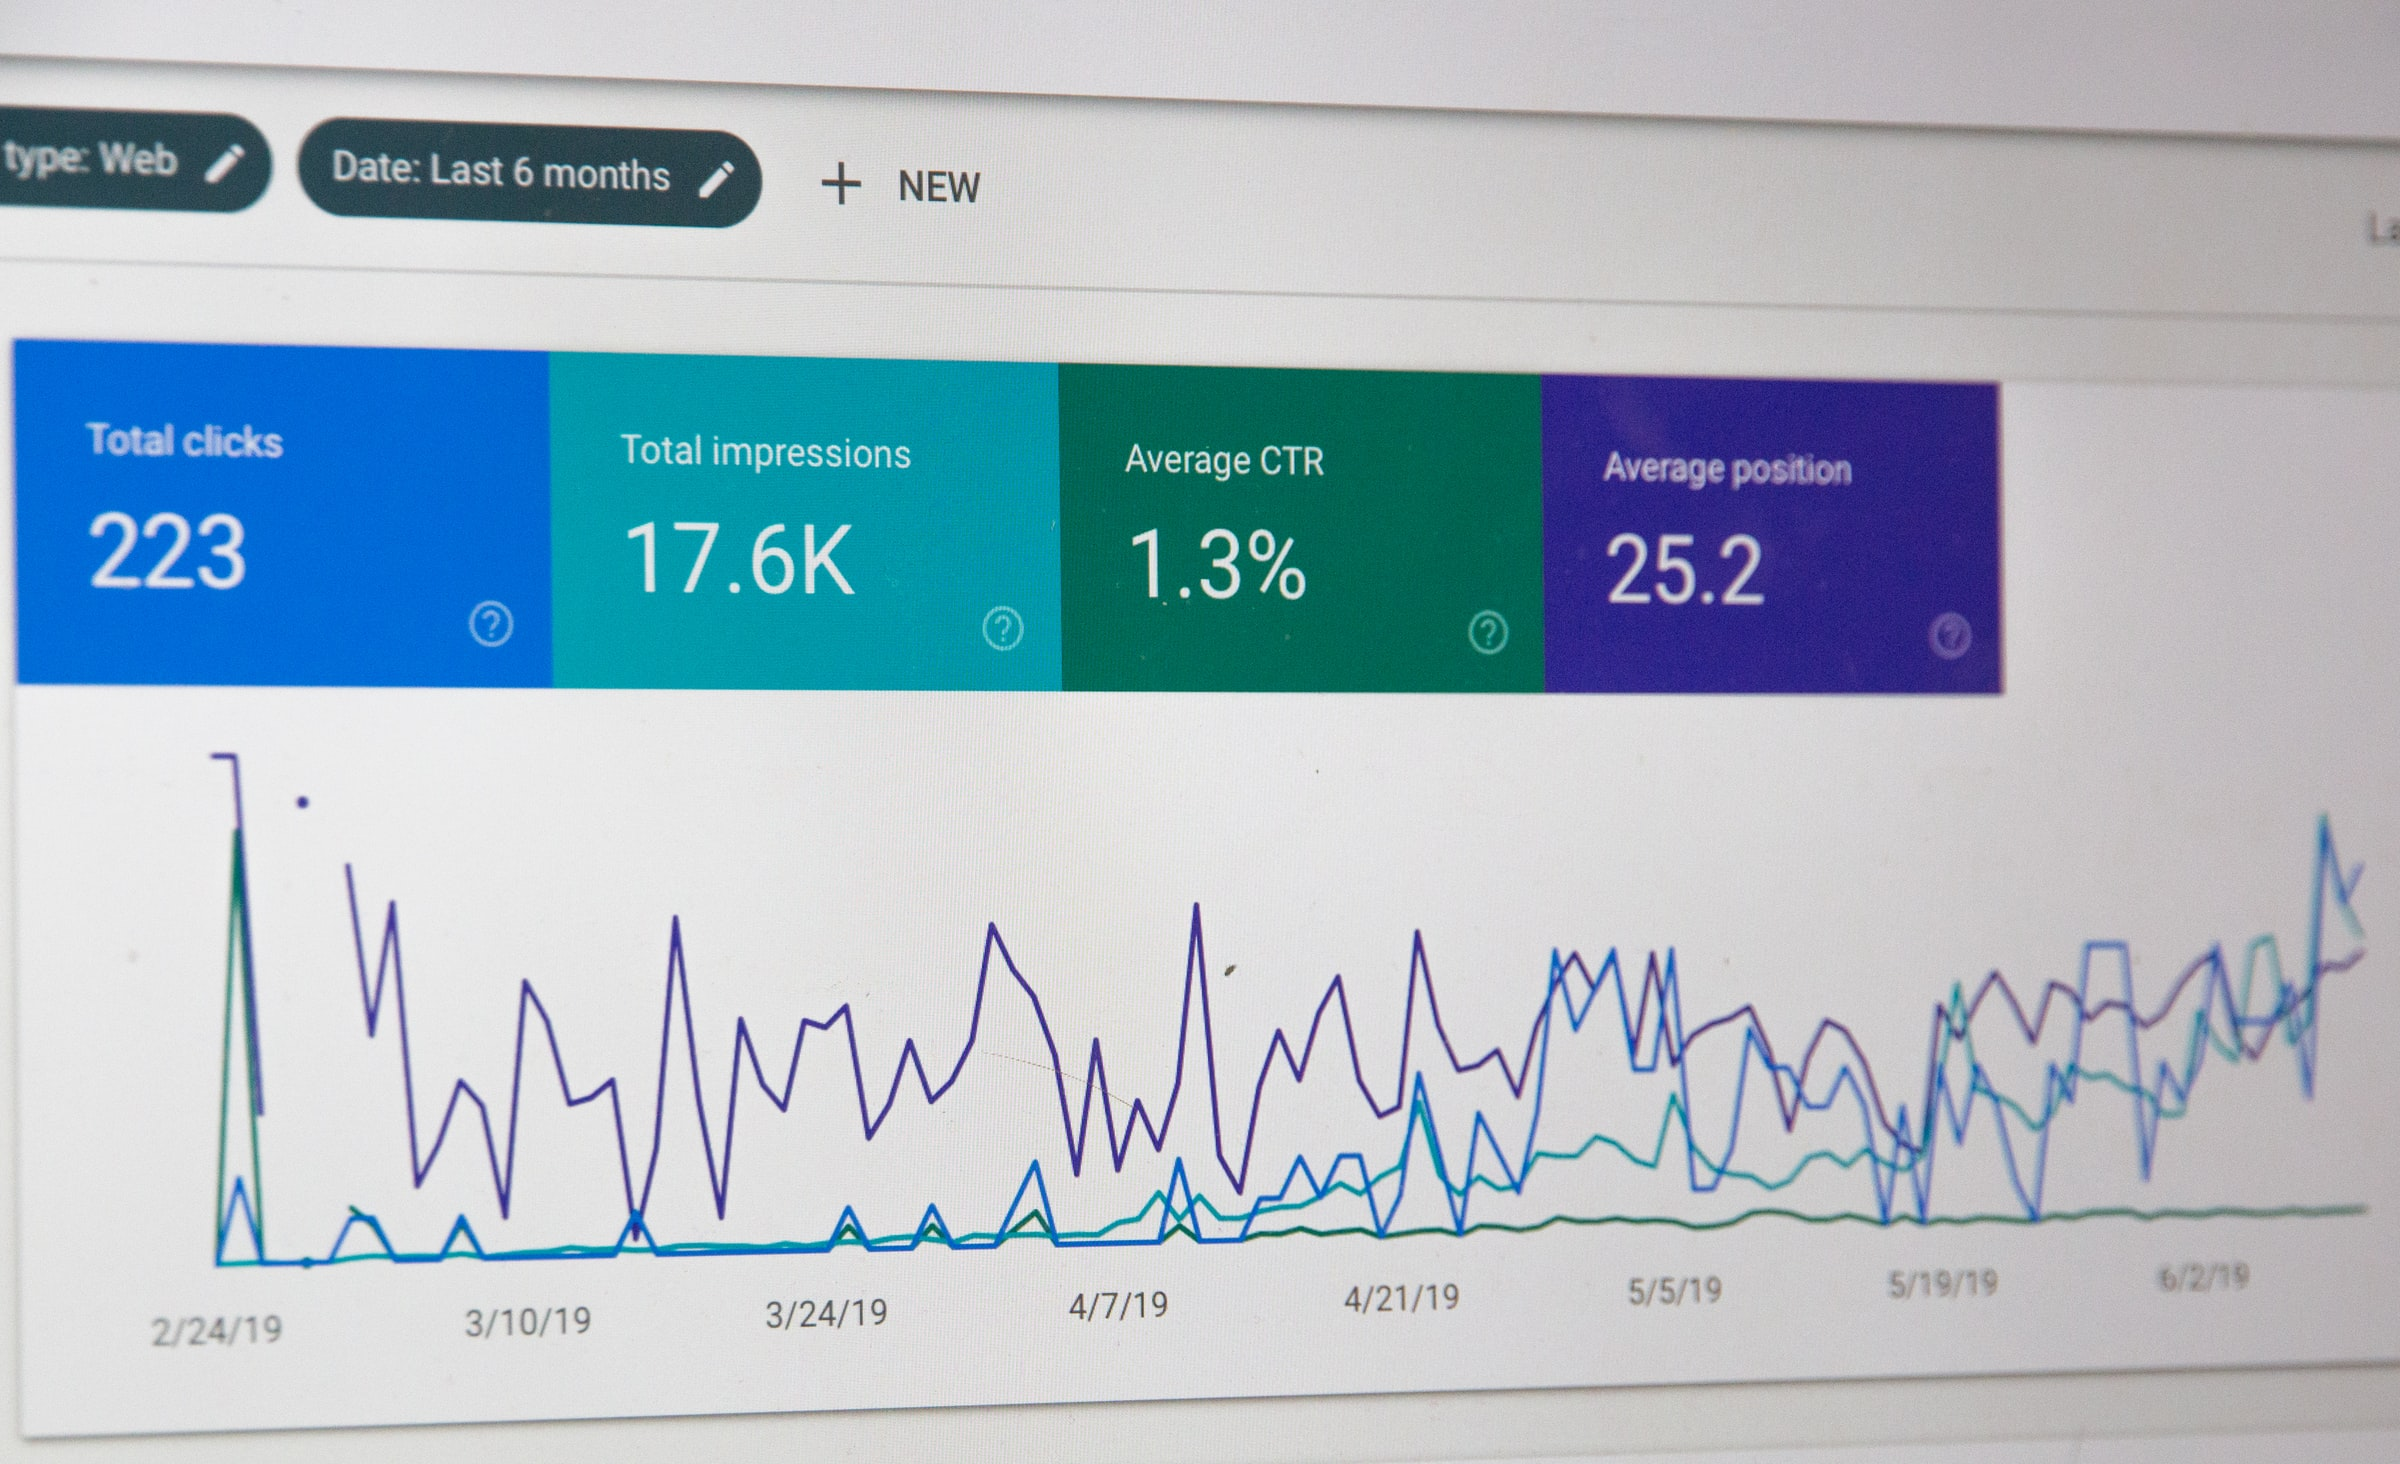 Leveraging Site Search Analytics